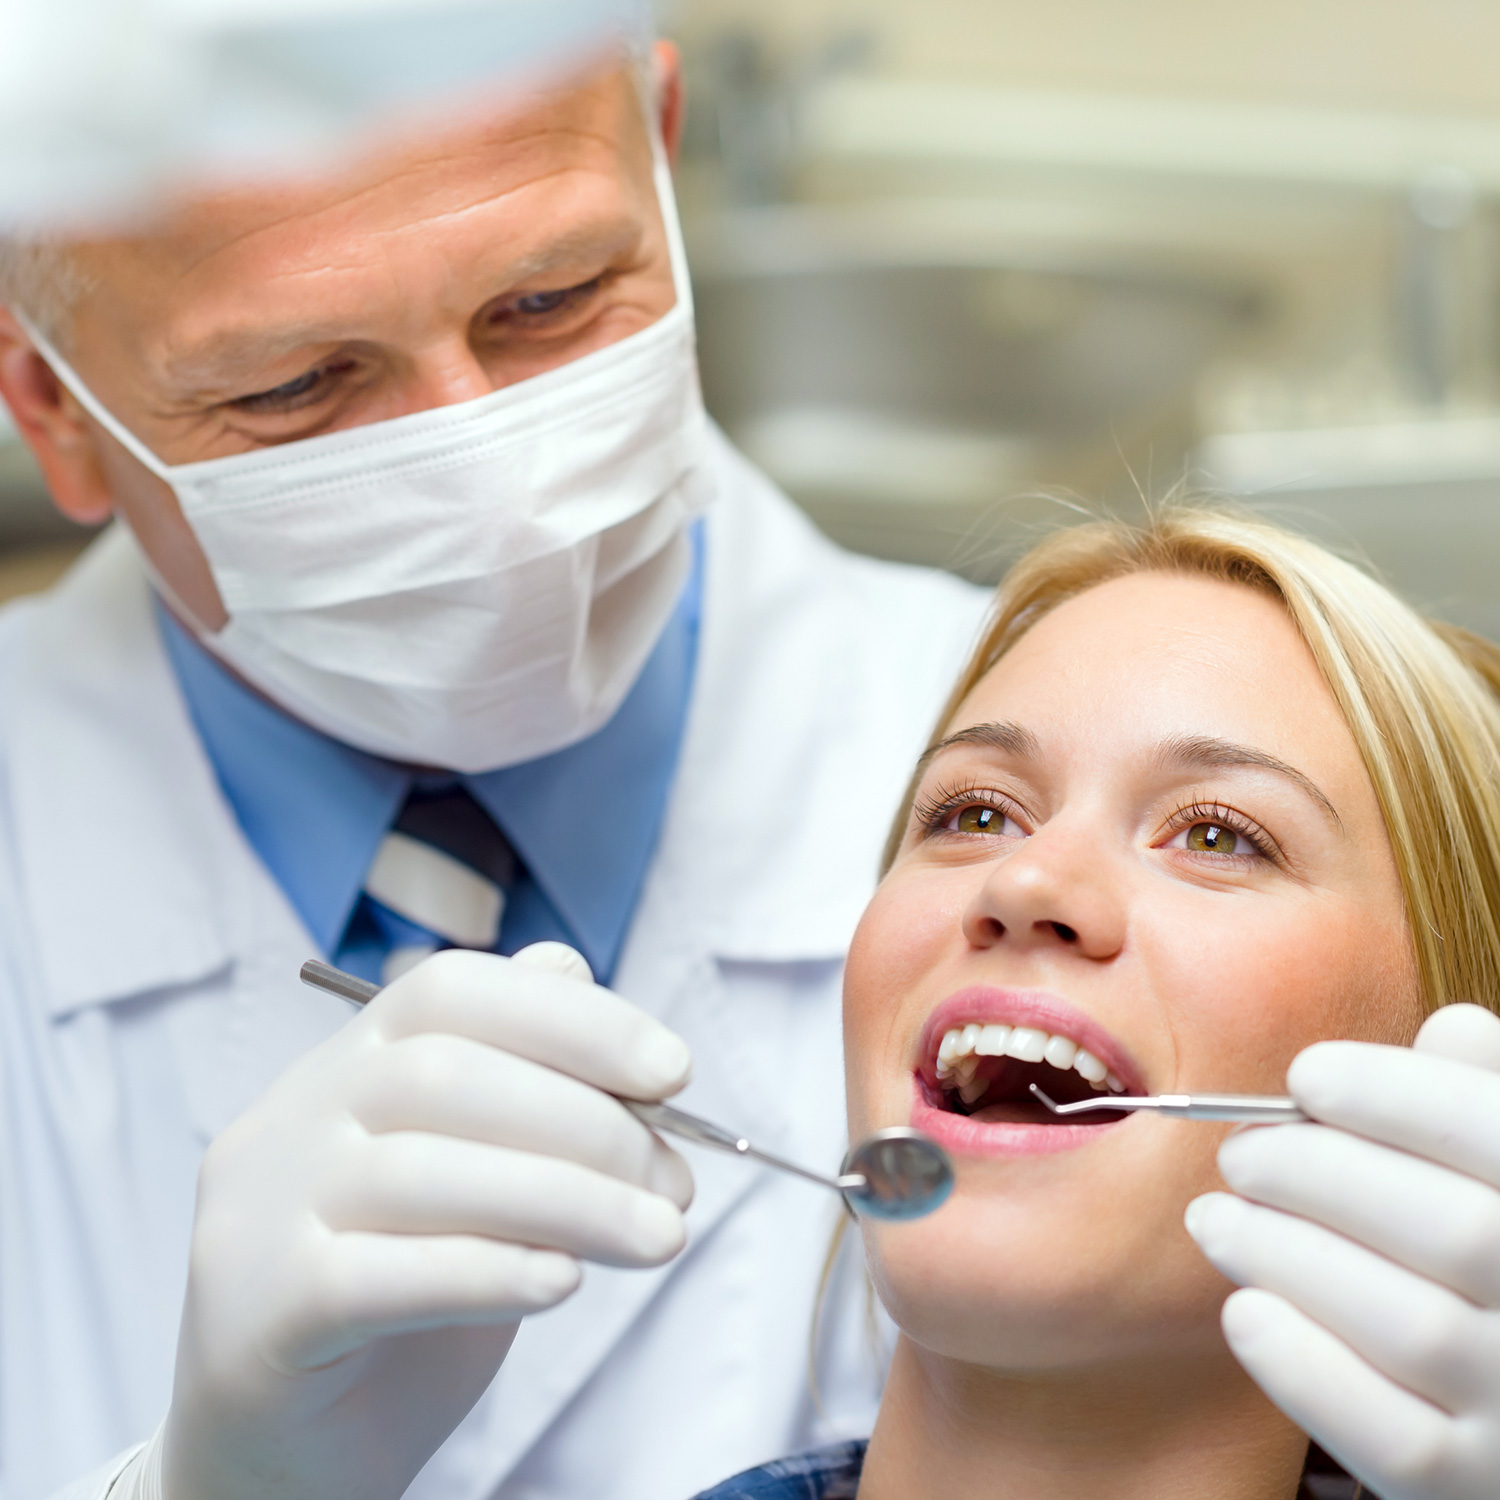 woman-dentist-teeth.jpg